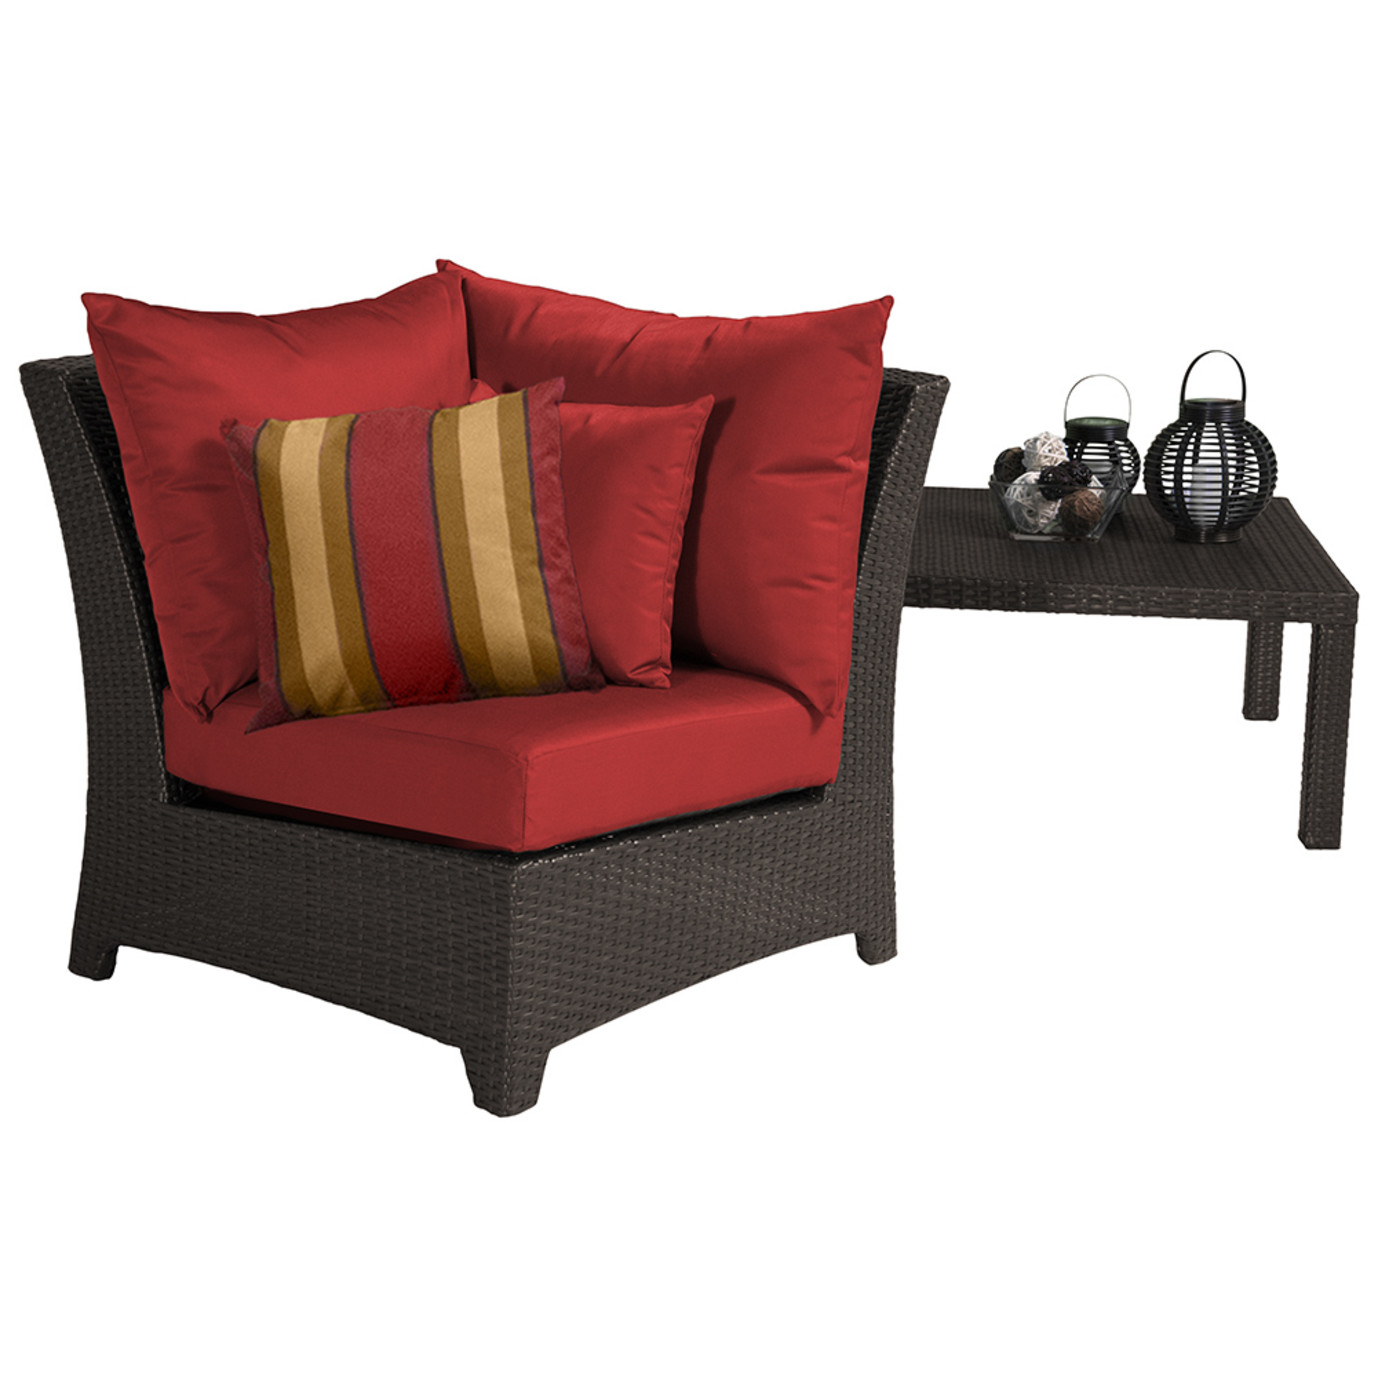 Deco corner chair cantina red rst brands